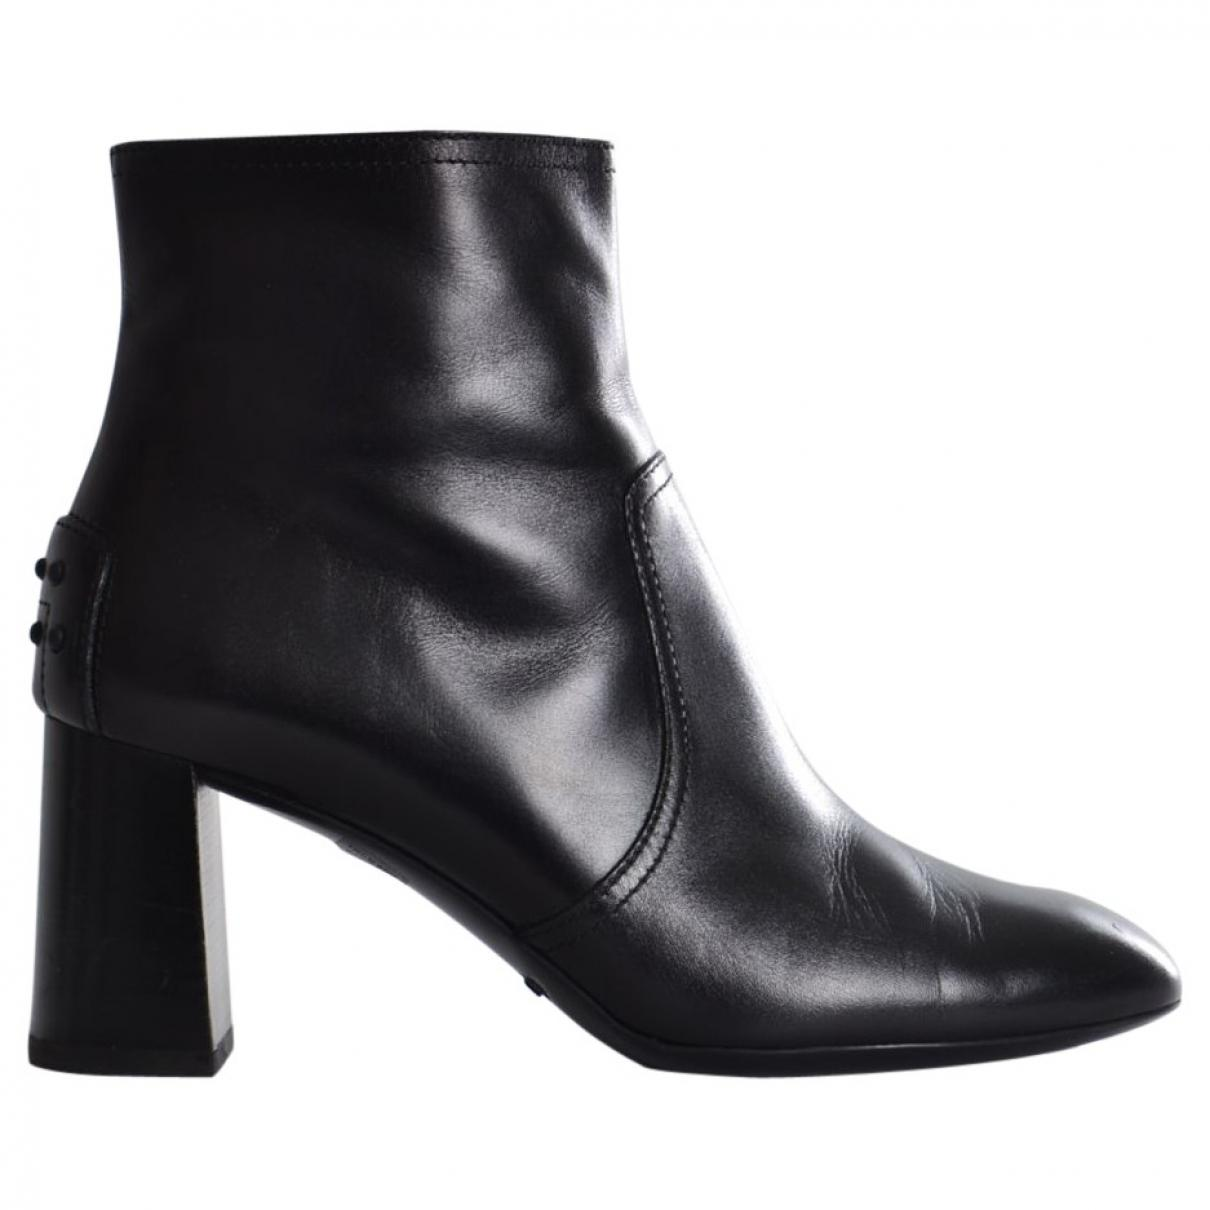 Pre-owned - Leather ankle boots Tod's CcL05